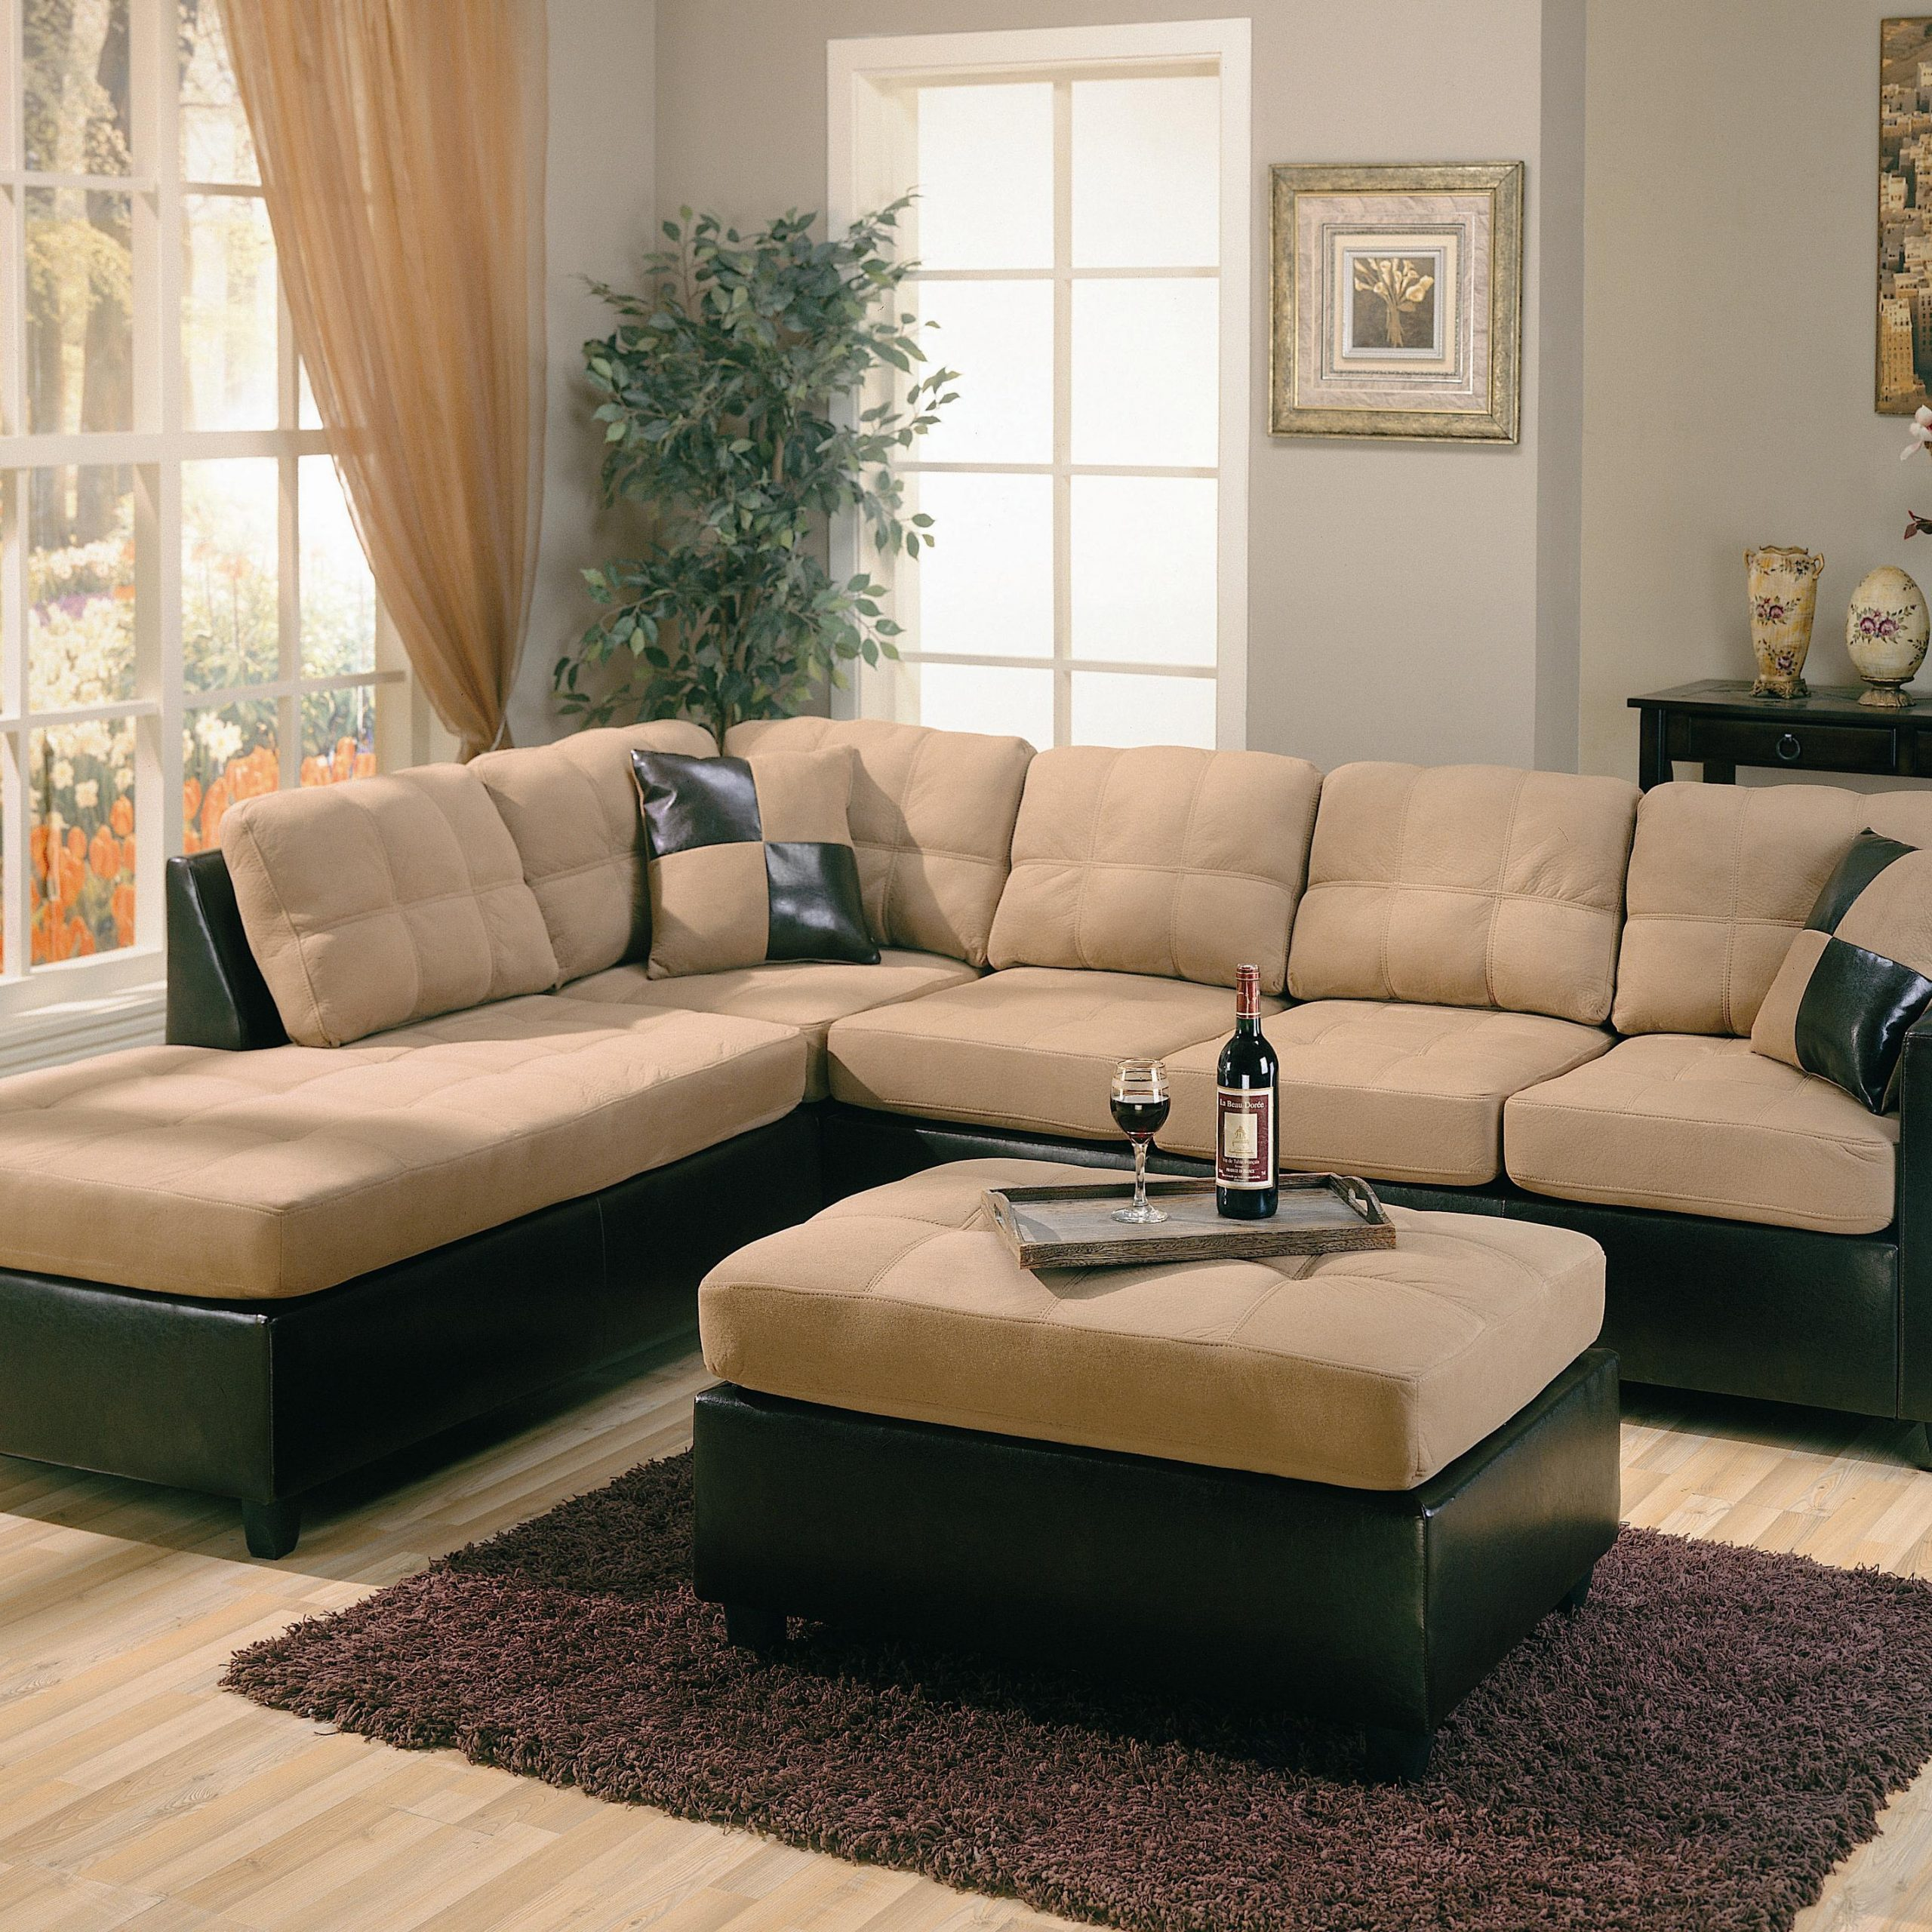 Most Recent Page Title Intended For Bonded Leather All In One Sectional Sofas With Ottoman And 2 Pillows Brown (View 8 of 20)